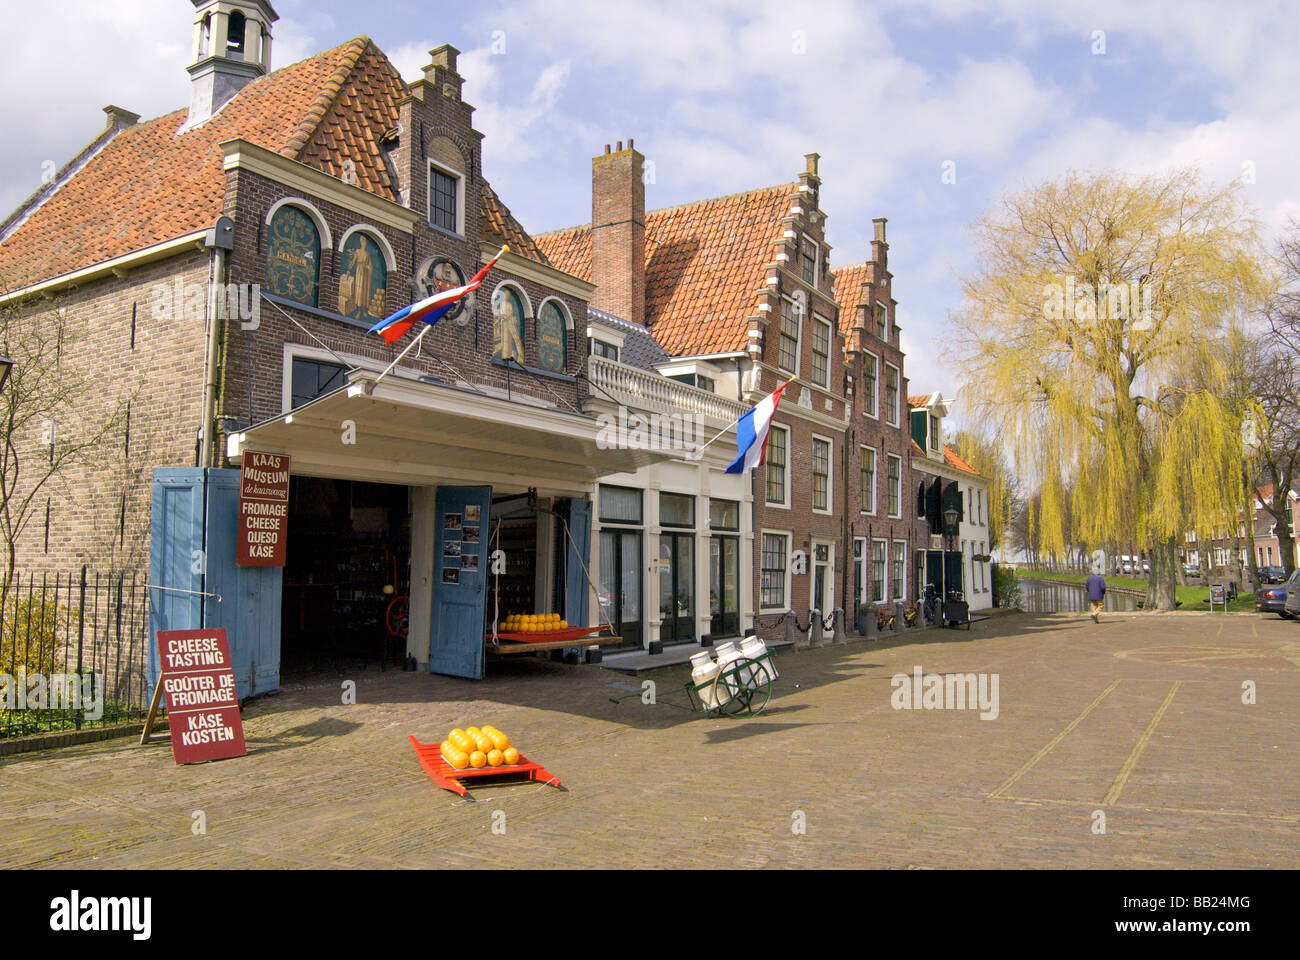 Europe, Netherlands, North Holland, Edam, cheese museum, cheese market - Stock Image